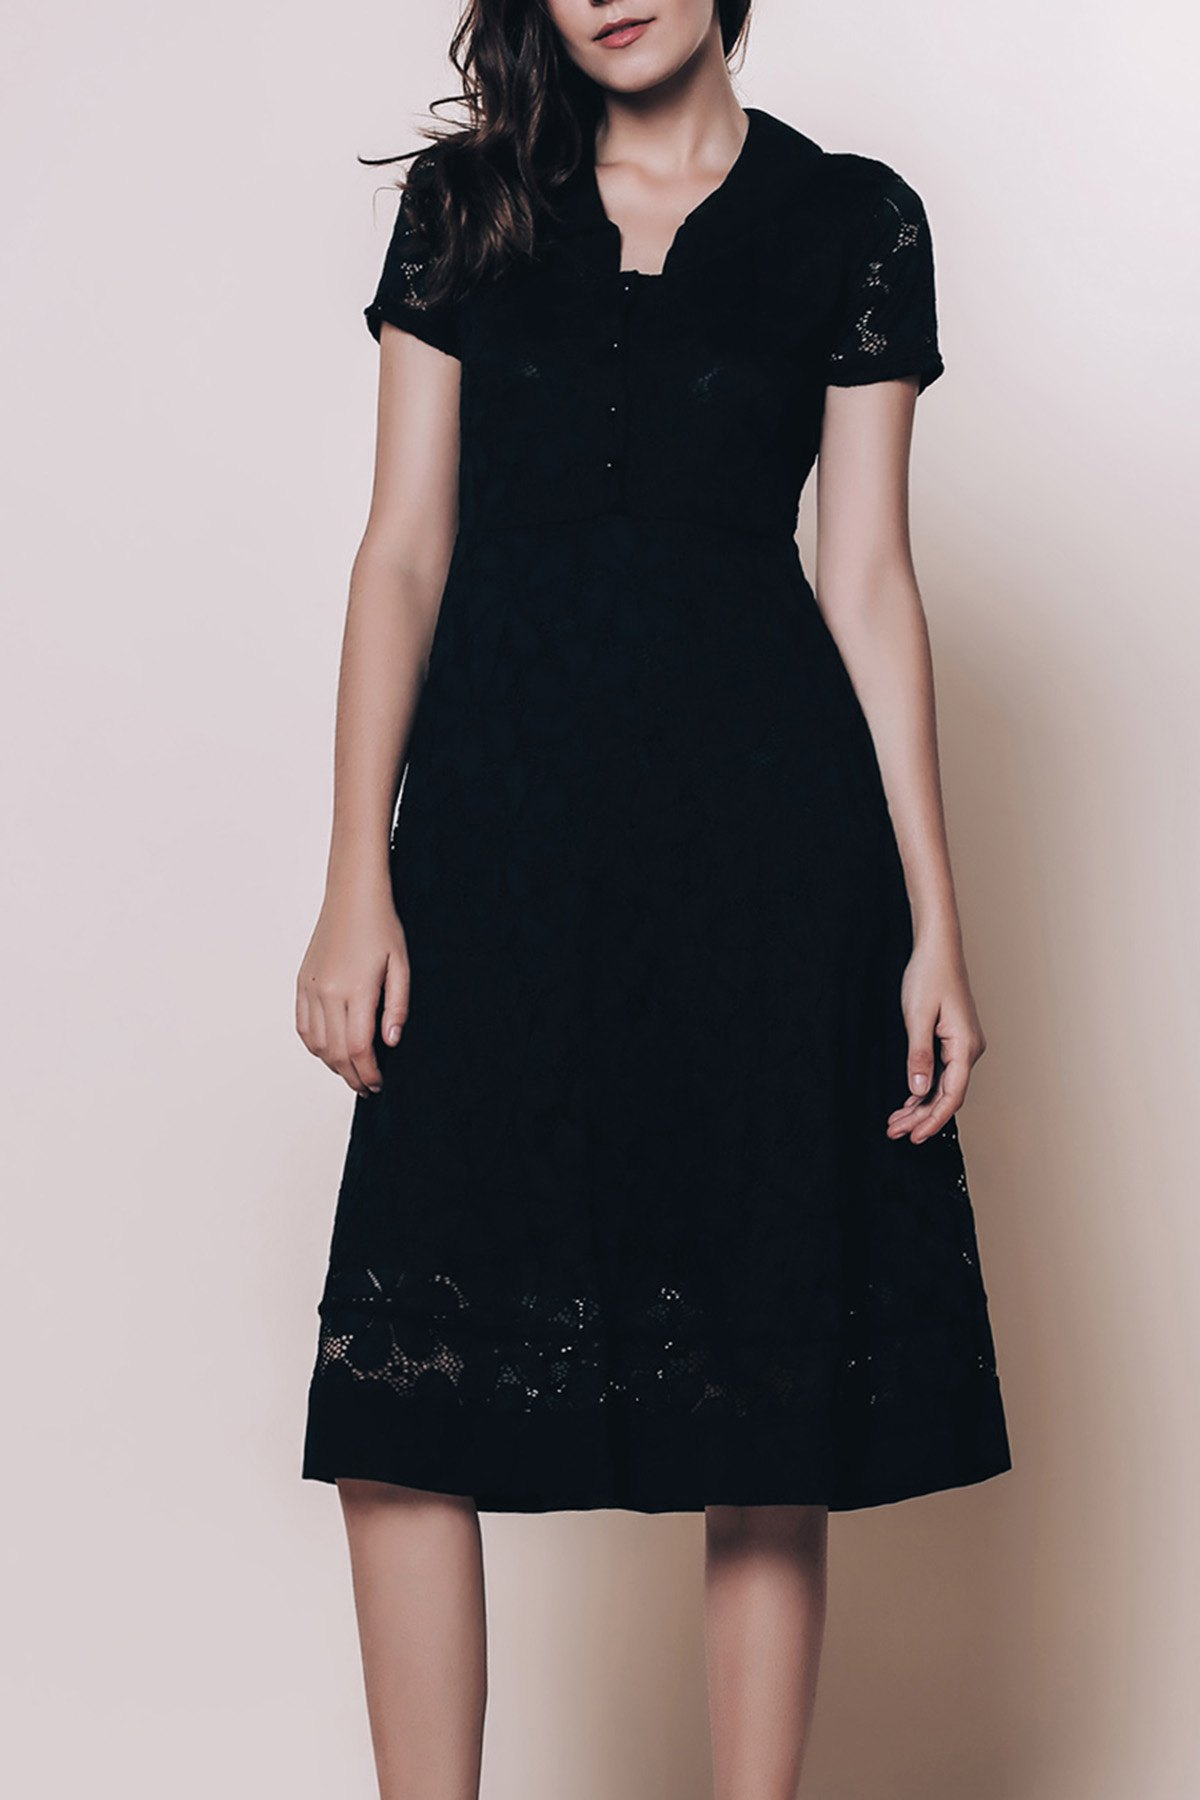 Vintage Style Short Sleeve V-Neck Lace Women's Black Dress - BLACK L